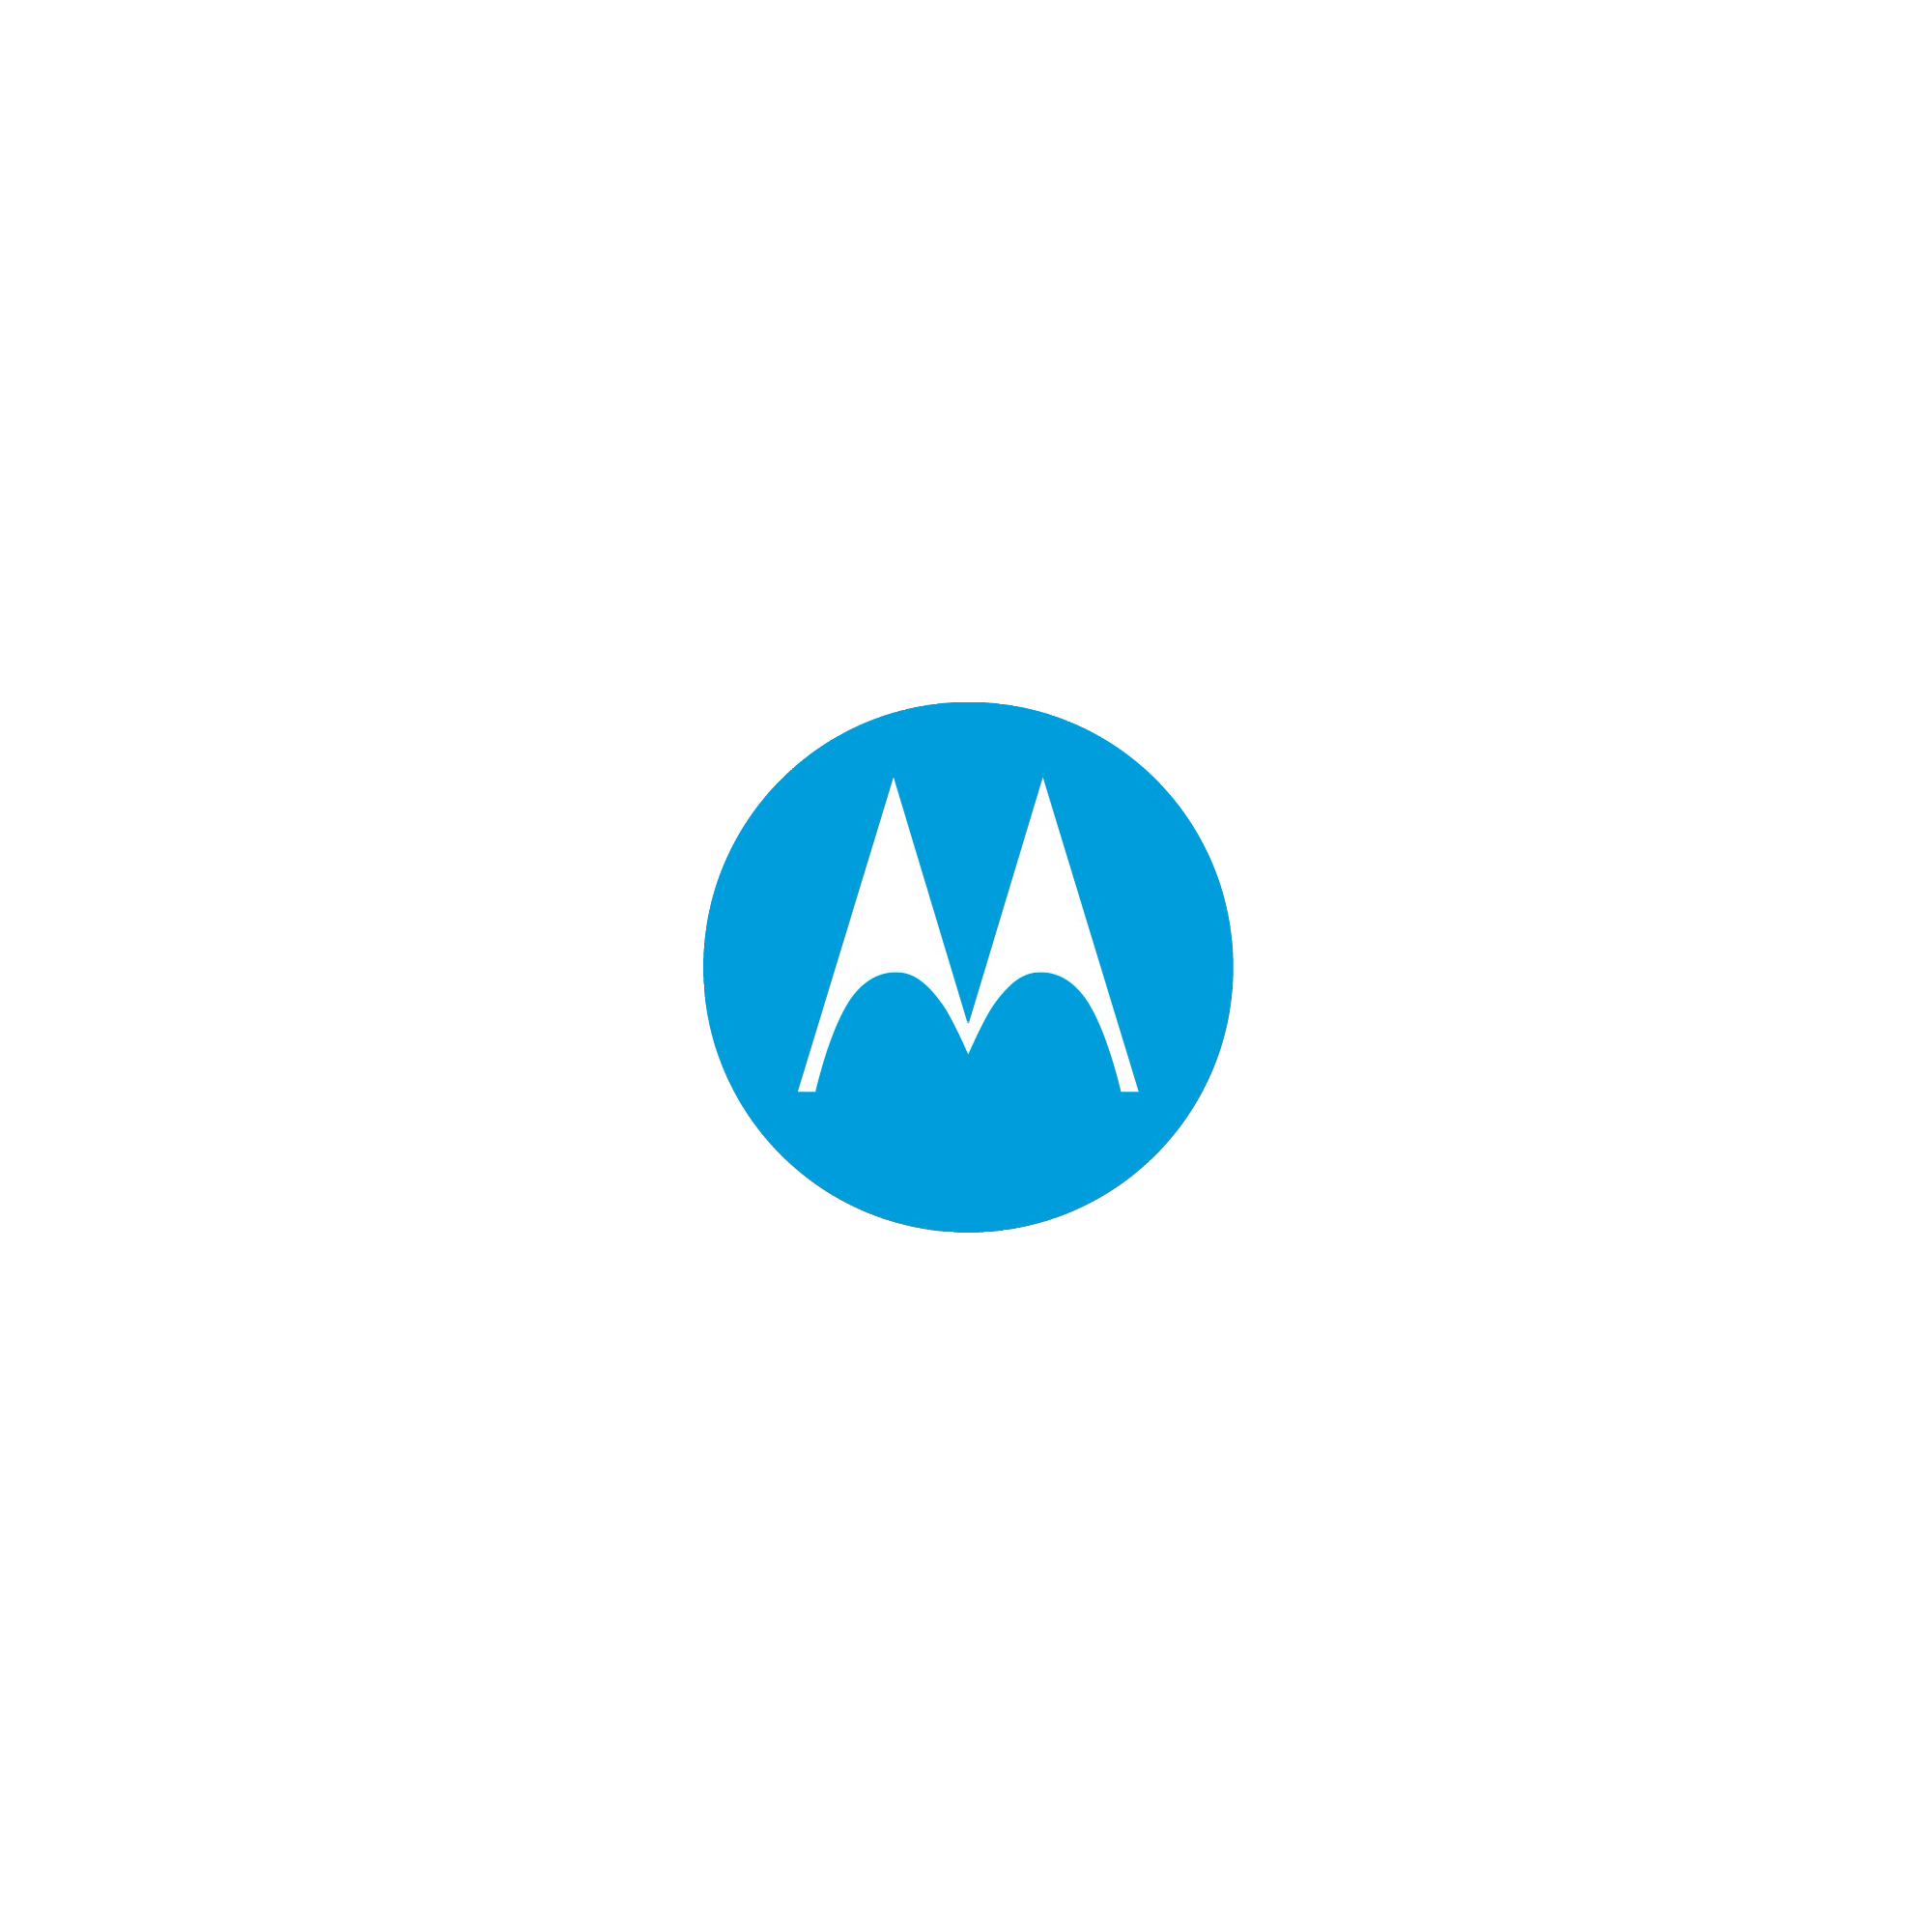 Motorola-Logo-Transparent-BLUE.png